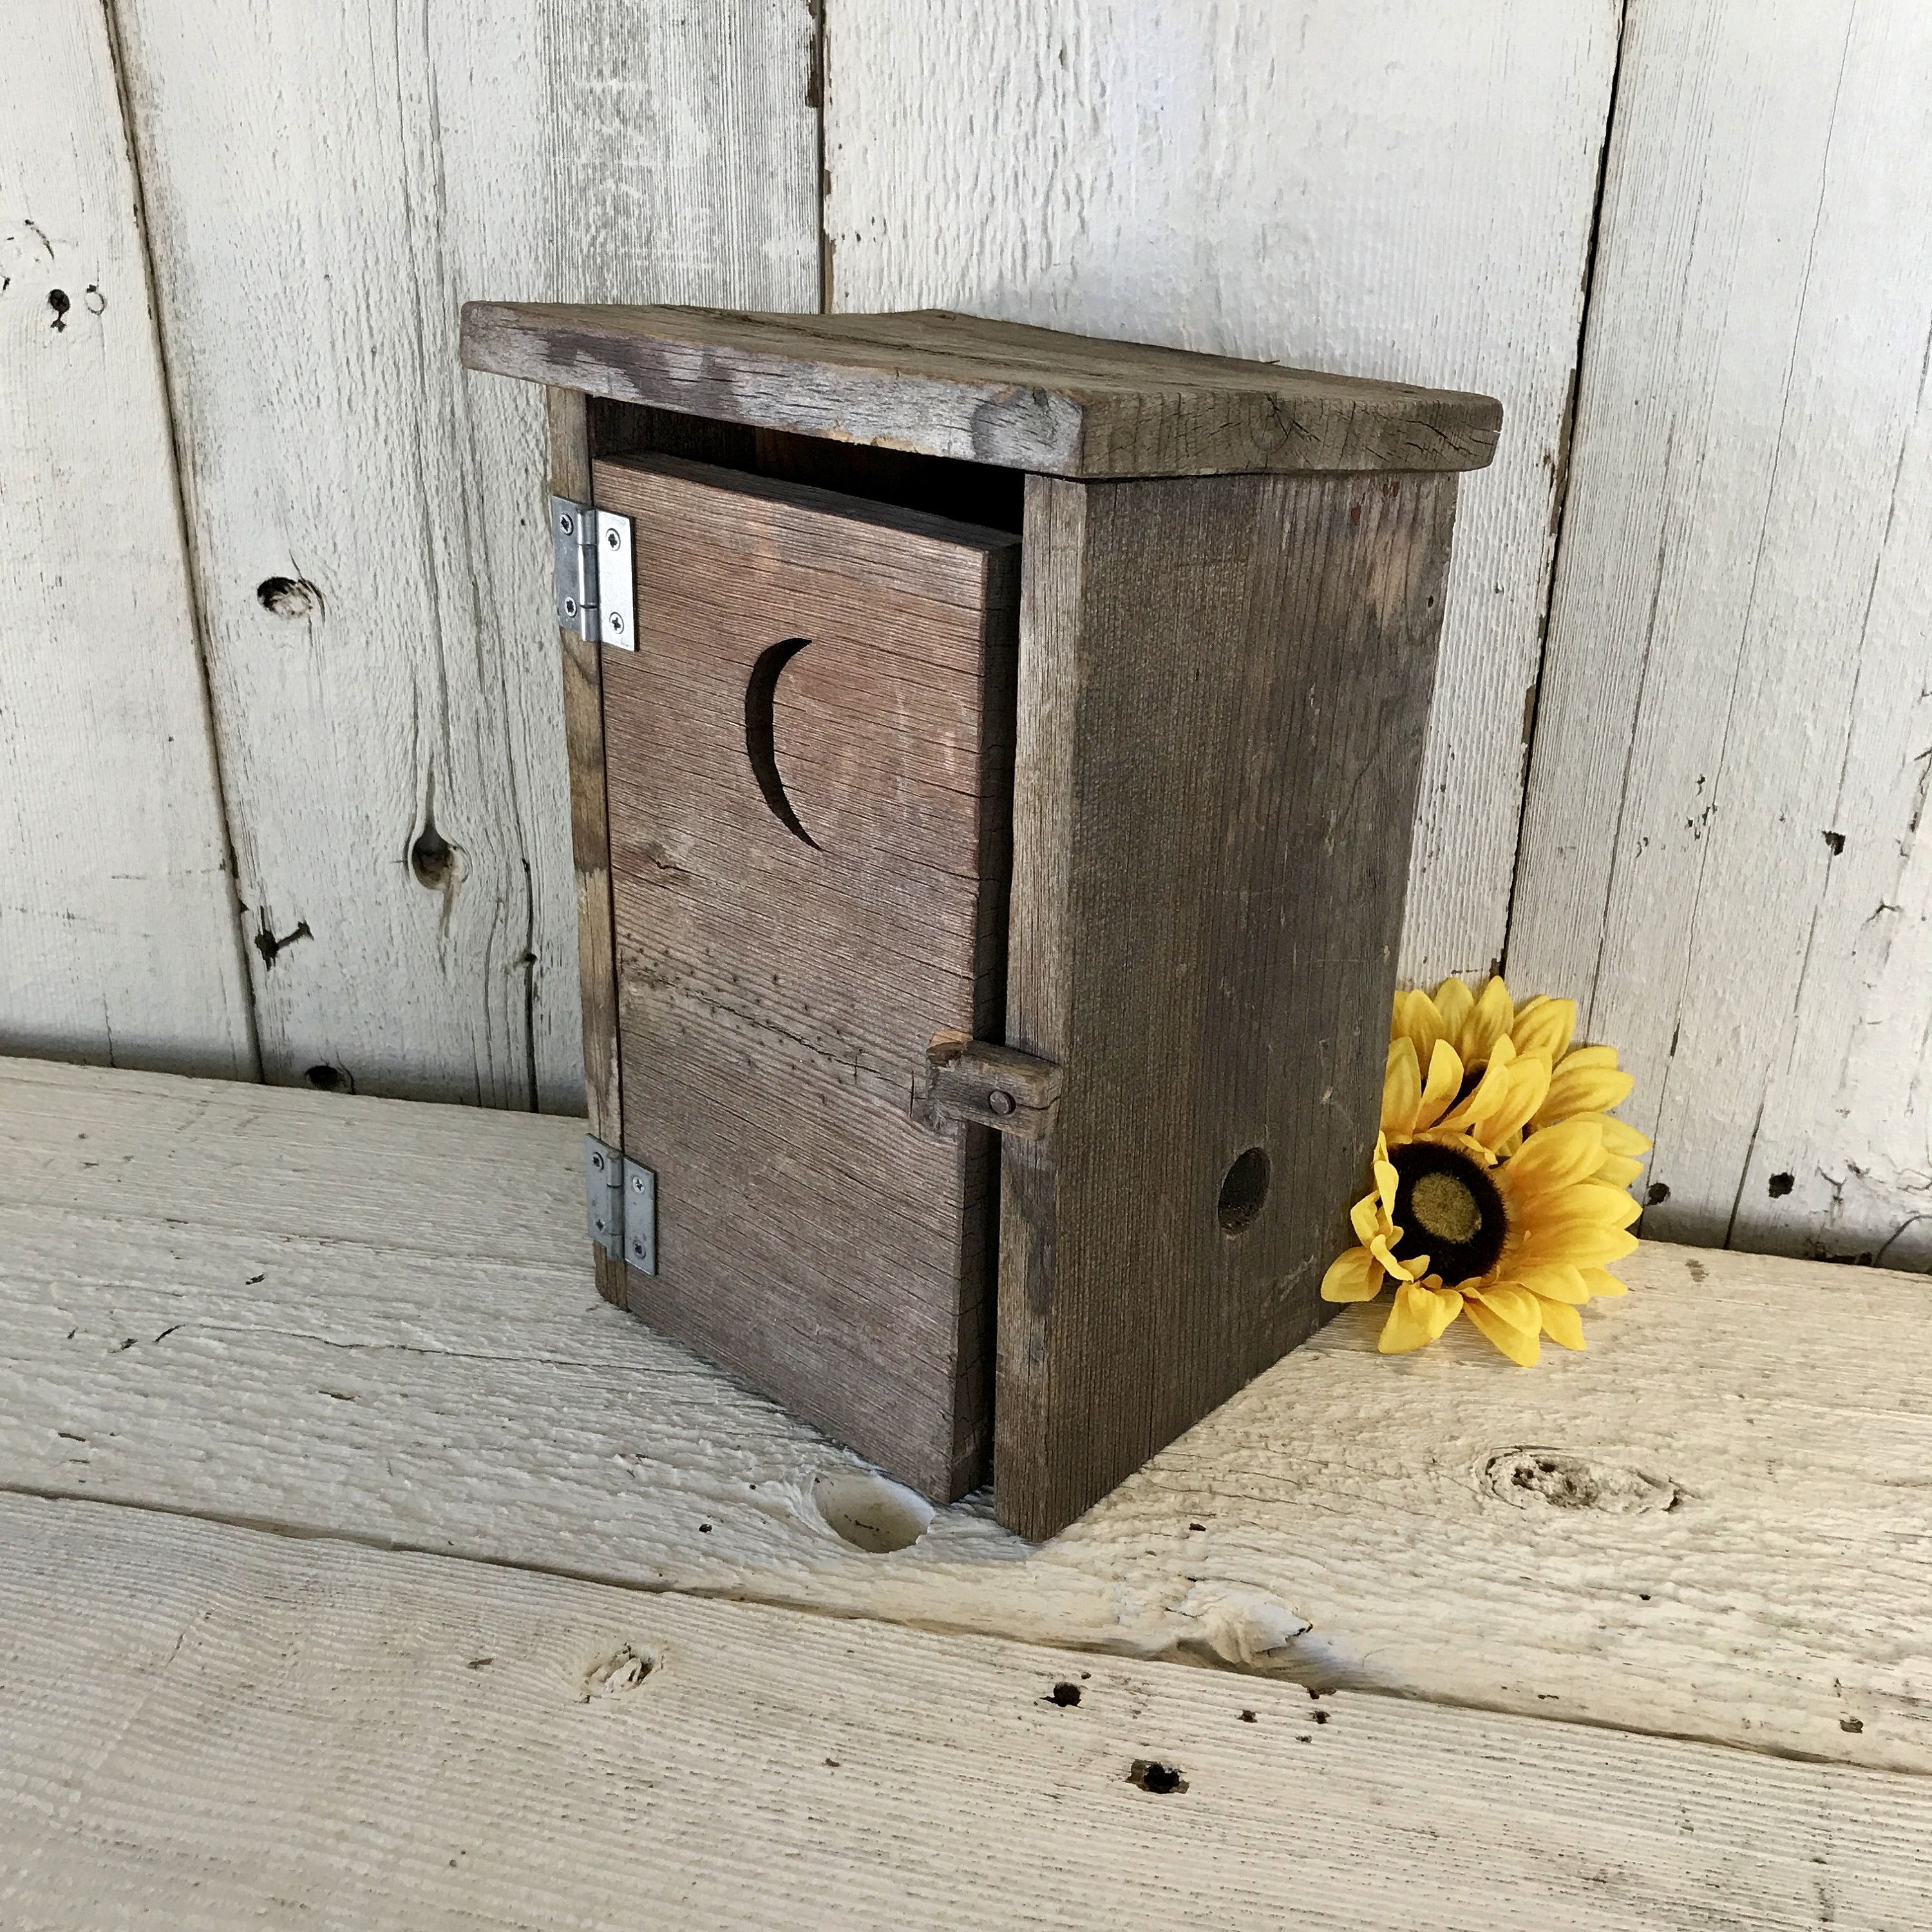 Rustic Weathered Wood Outhouse Toilet Paper Holder Counter Top Or Hanging Farmhouse Storage Box Rustic Bathroom Decor Weathered Wood Farmhouse Storage Boxes